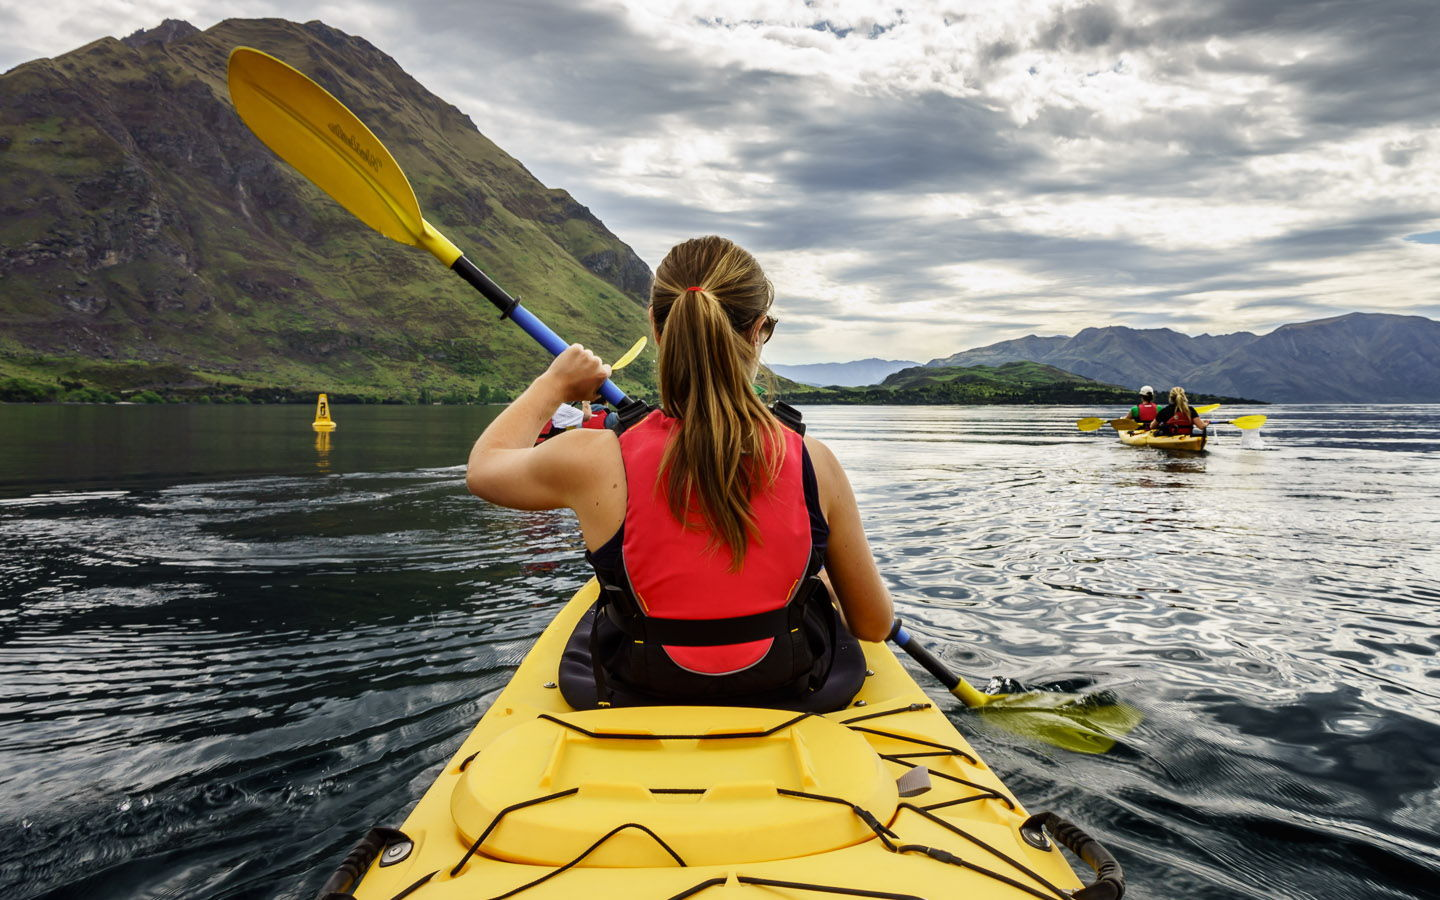 https://wanderlusters.com/wp-content/uploads/2014/01/wanaka-kayak-sup-featured.jpg